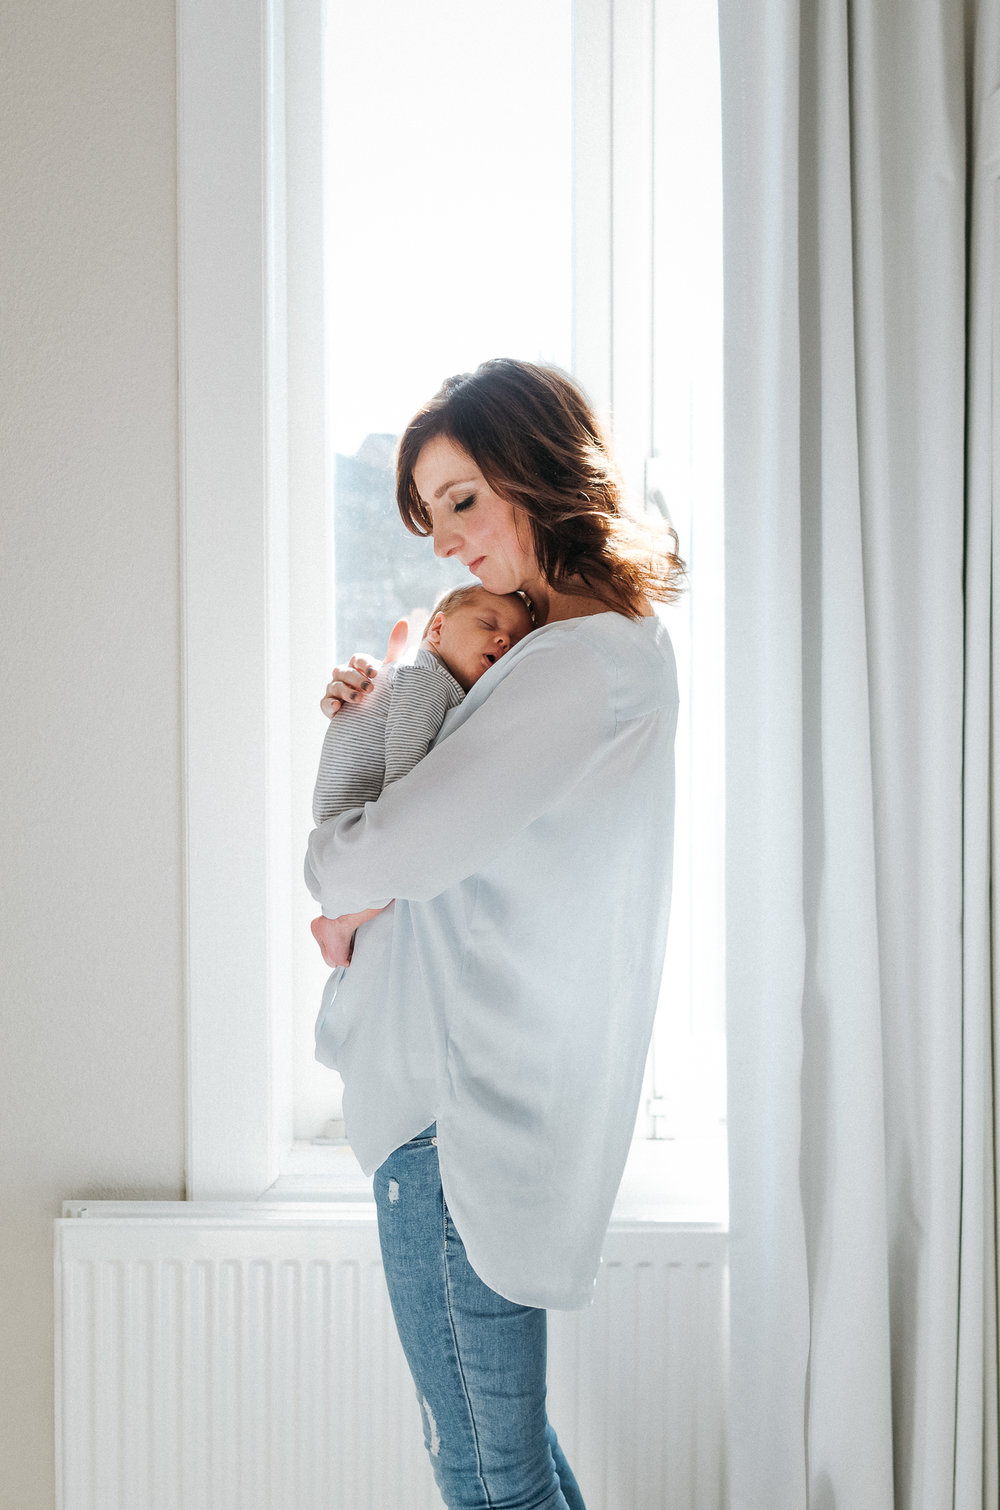 Vicky_McLachlan_Photography_Family_Newborn_Lifestyle_Photographer-1-3-4.jpg